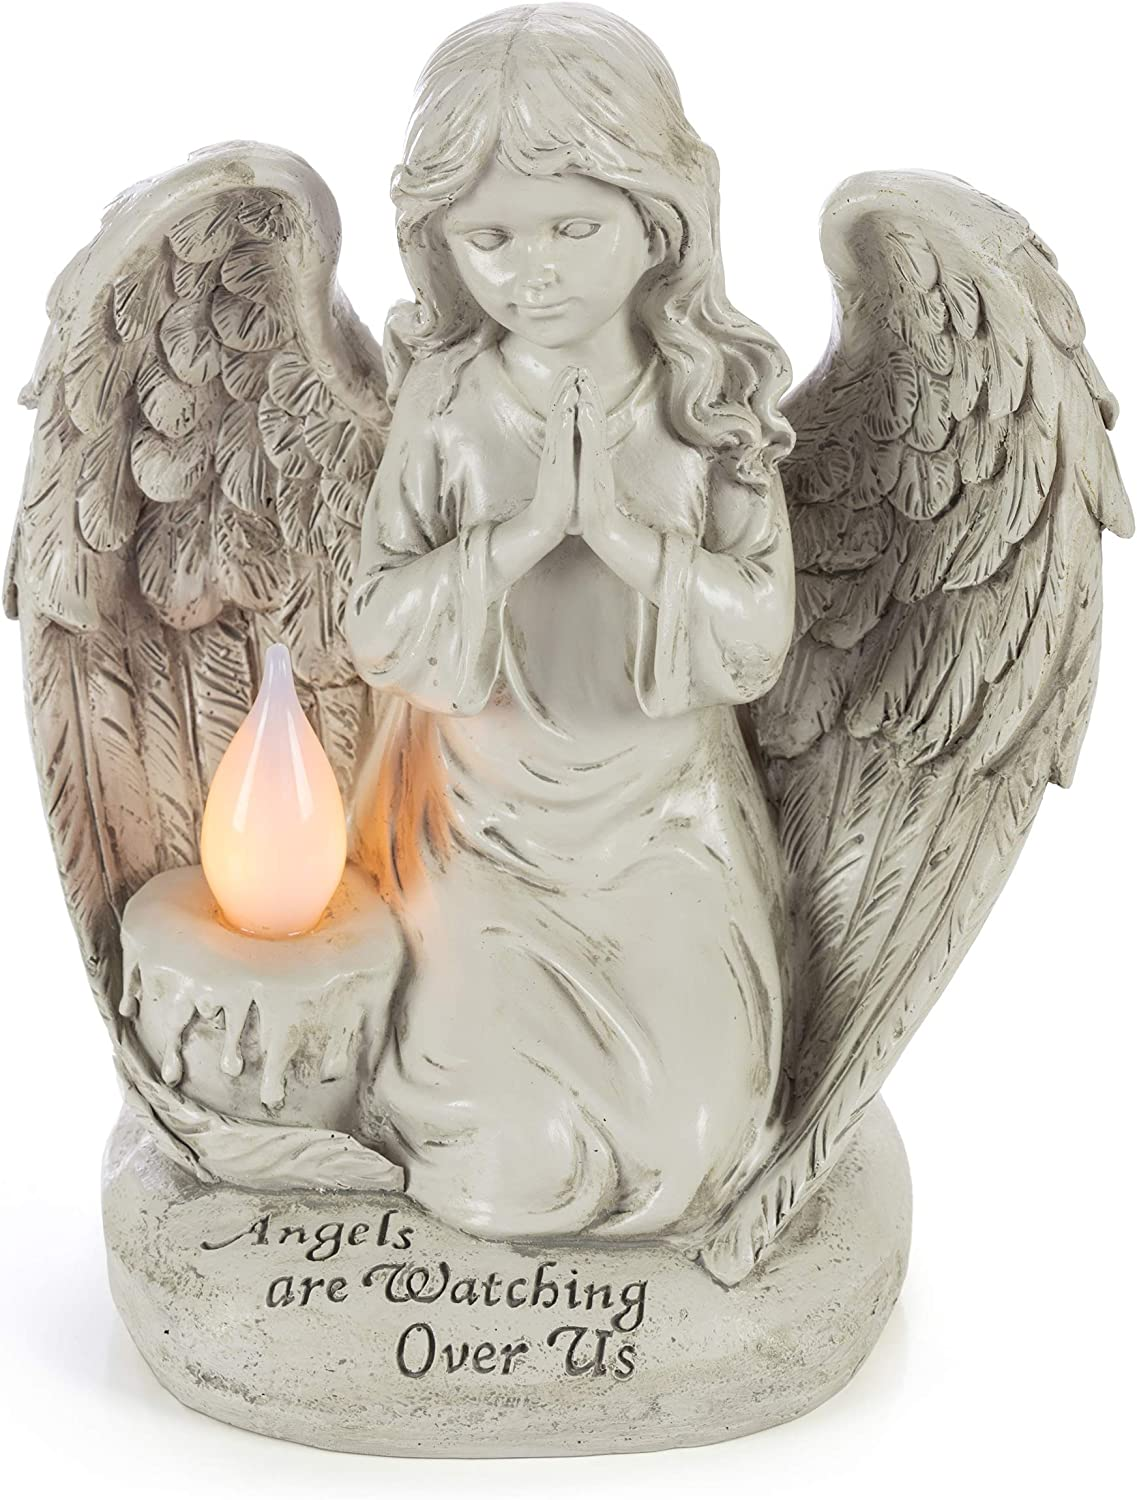 Praying Angel Watching Over Us Solar Powered LED Outdoor Decor Garden Light